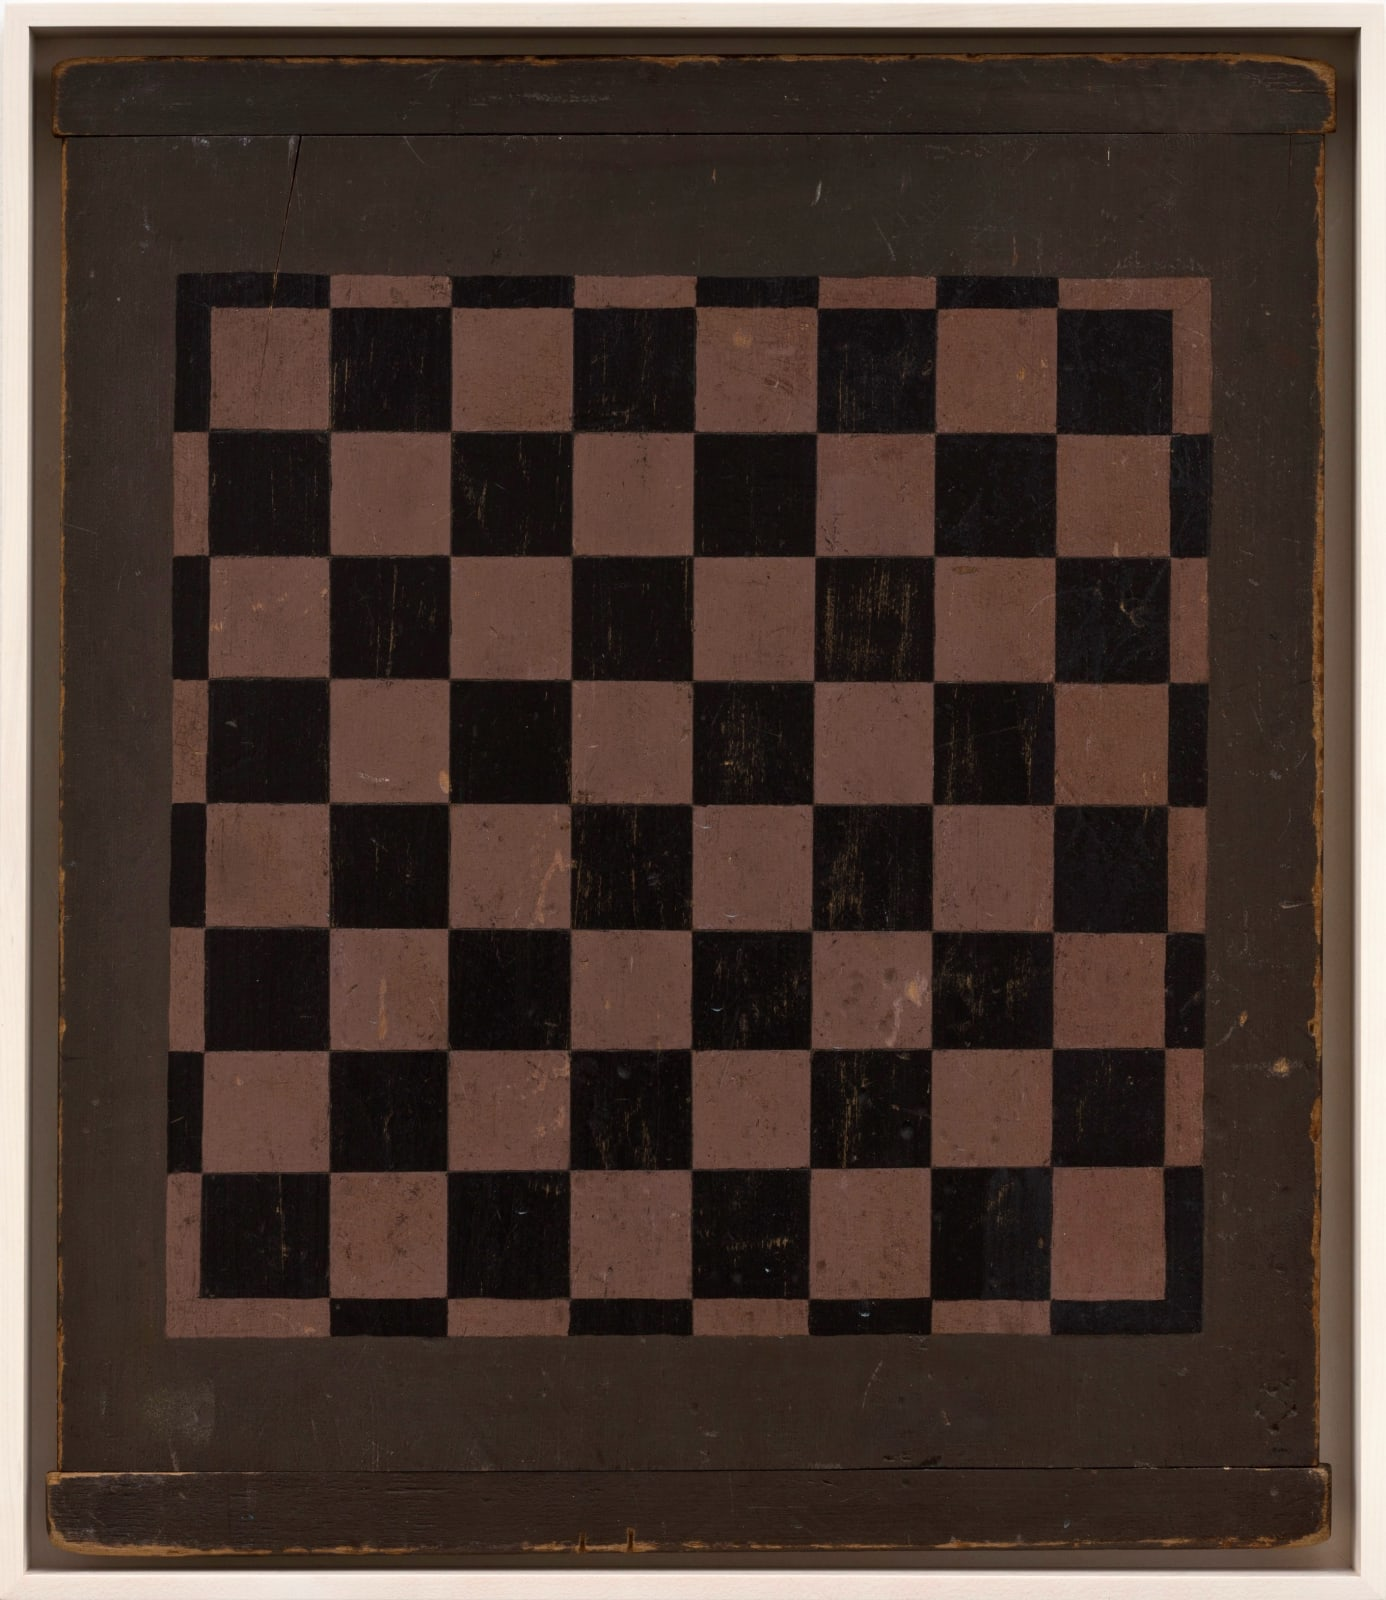 CHECKERS GAME BOARD, C. 1900-1920 WOOD WITH POLYCHROME 22 x 18 3/4 in. 55.9 x 47.6 cm. (AU 292)